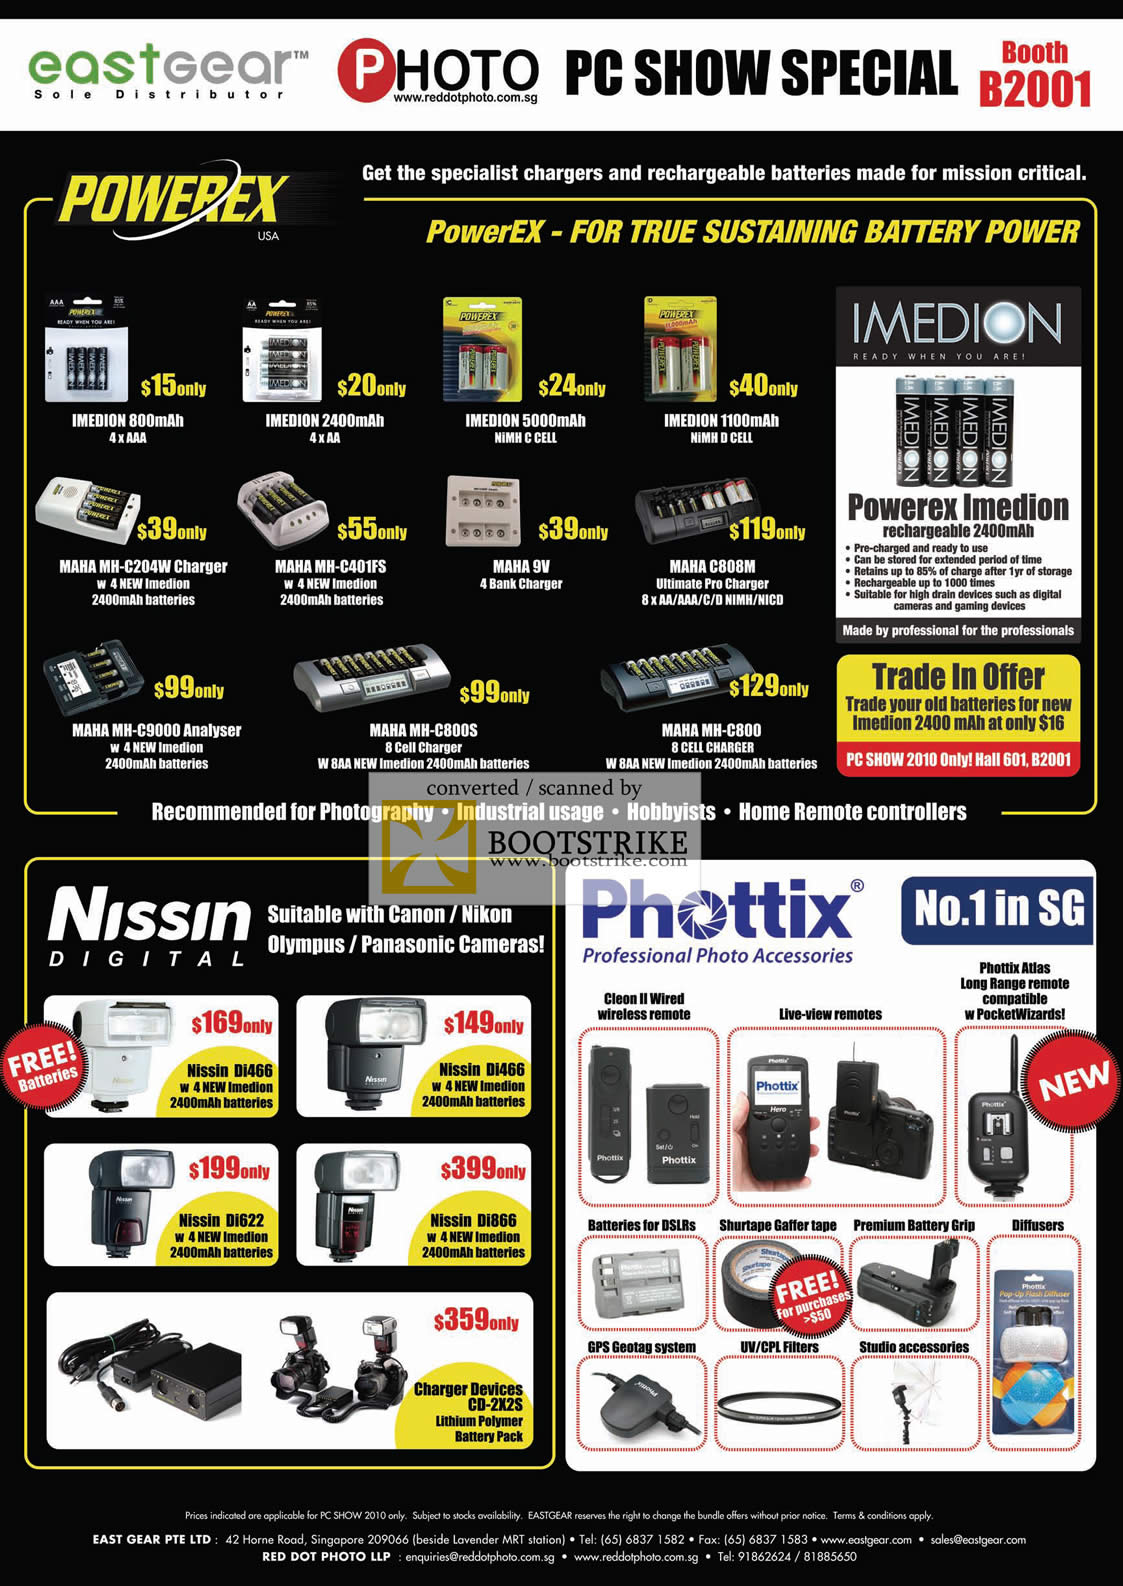 PC Show 2010 price list image brochure of Eastgear Powerex Imedion Rechargeable Batteries Maha Charger Analyser Nissin Digital Flash Phottix Wireless Remote GPS